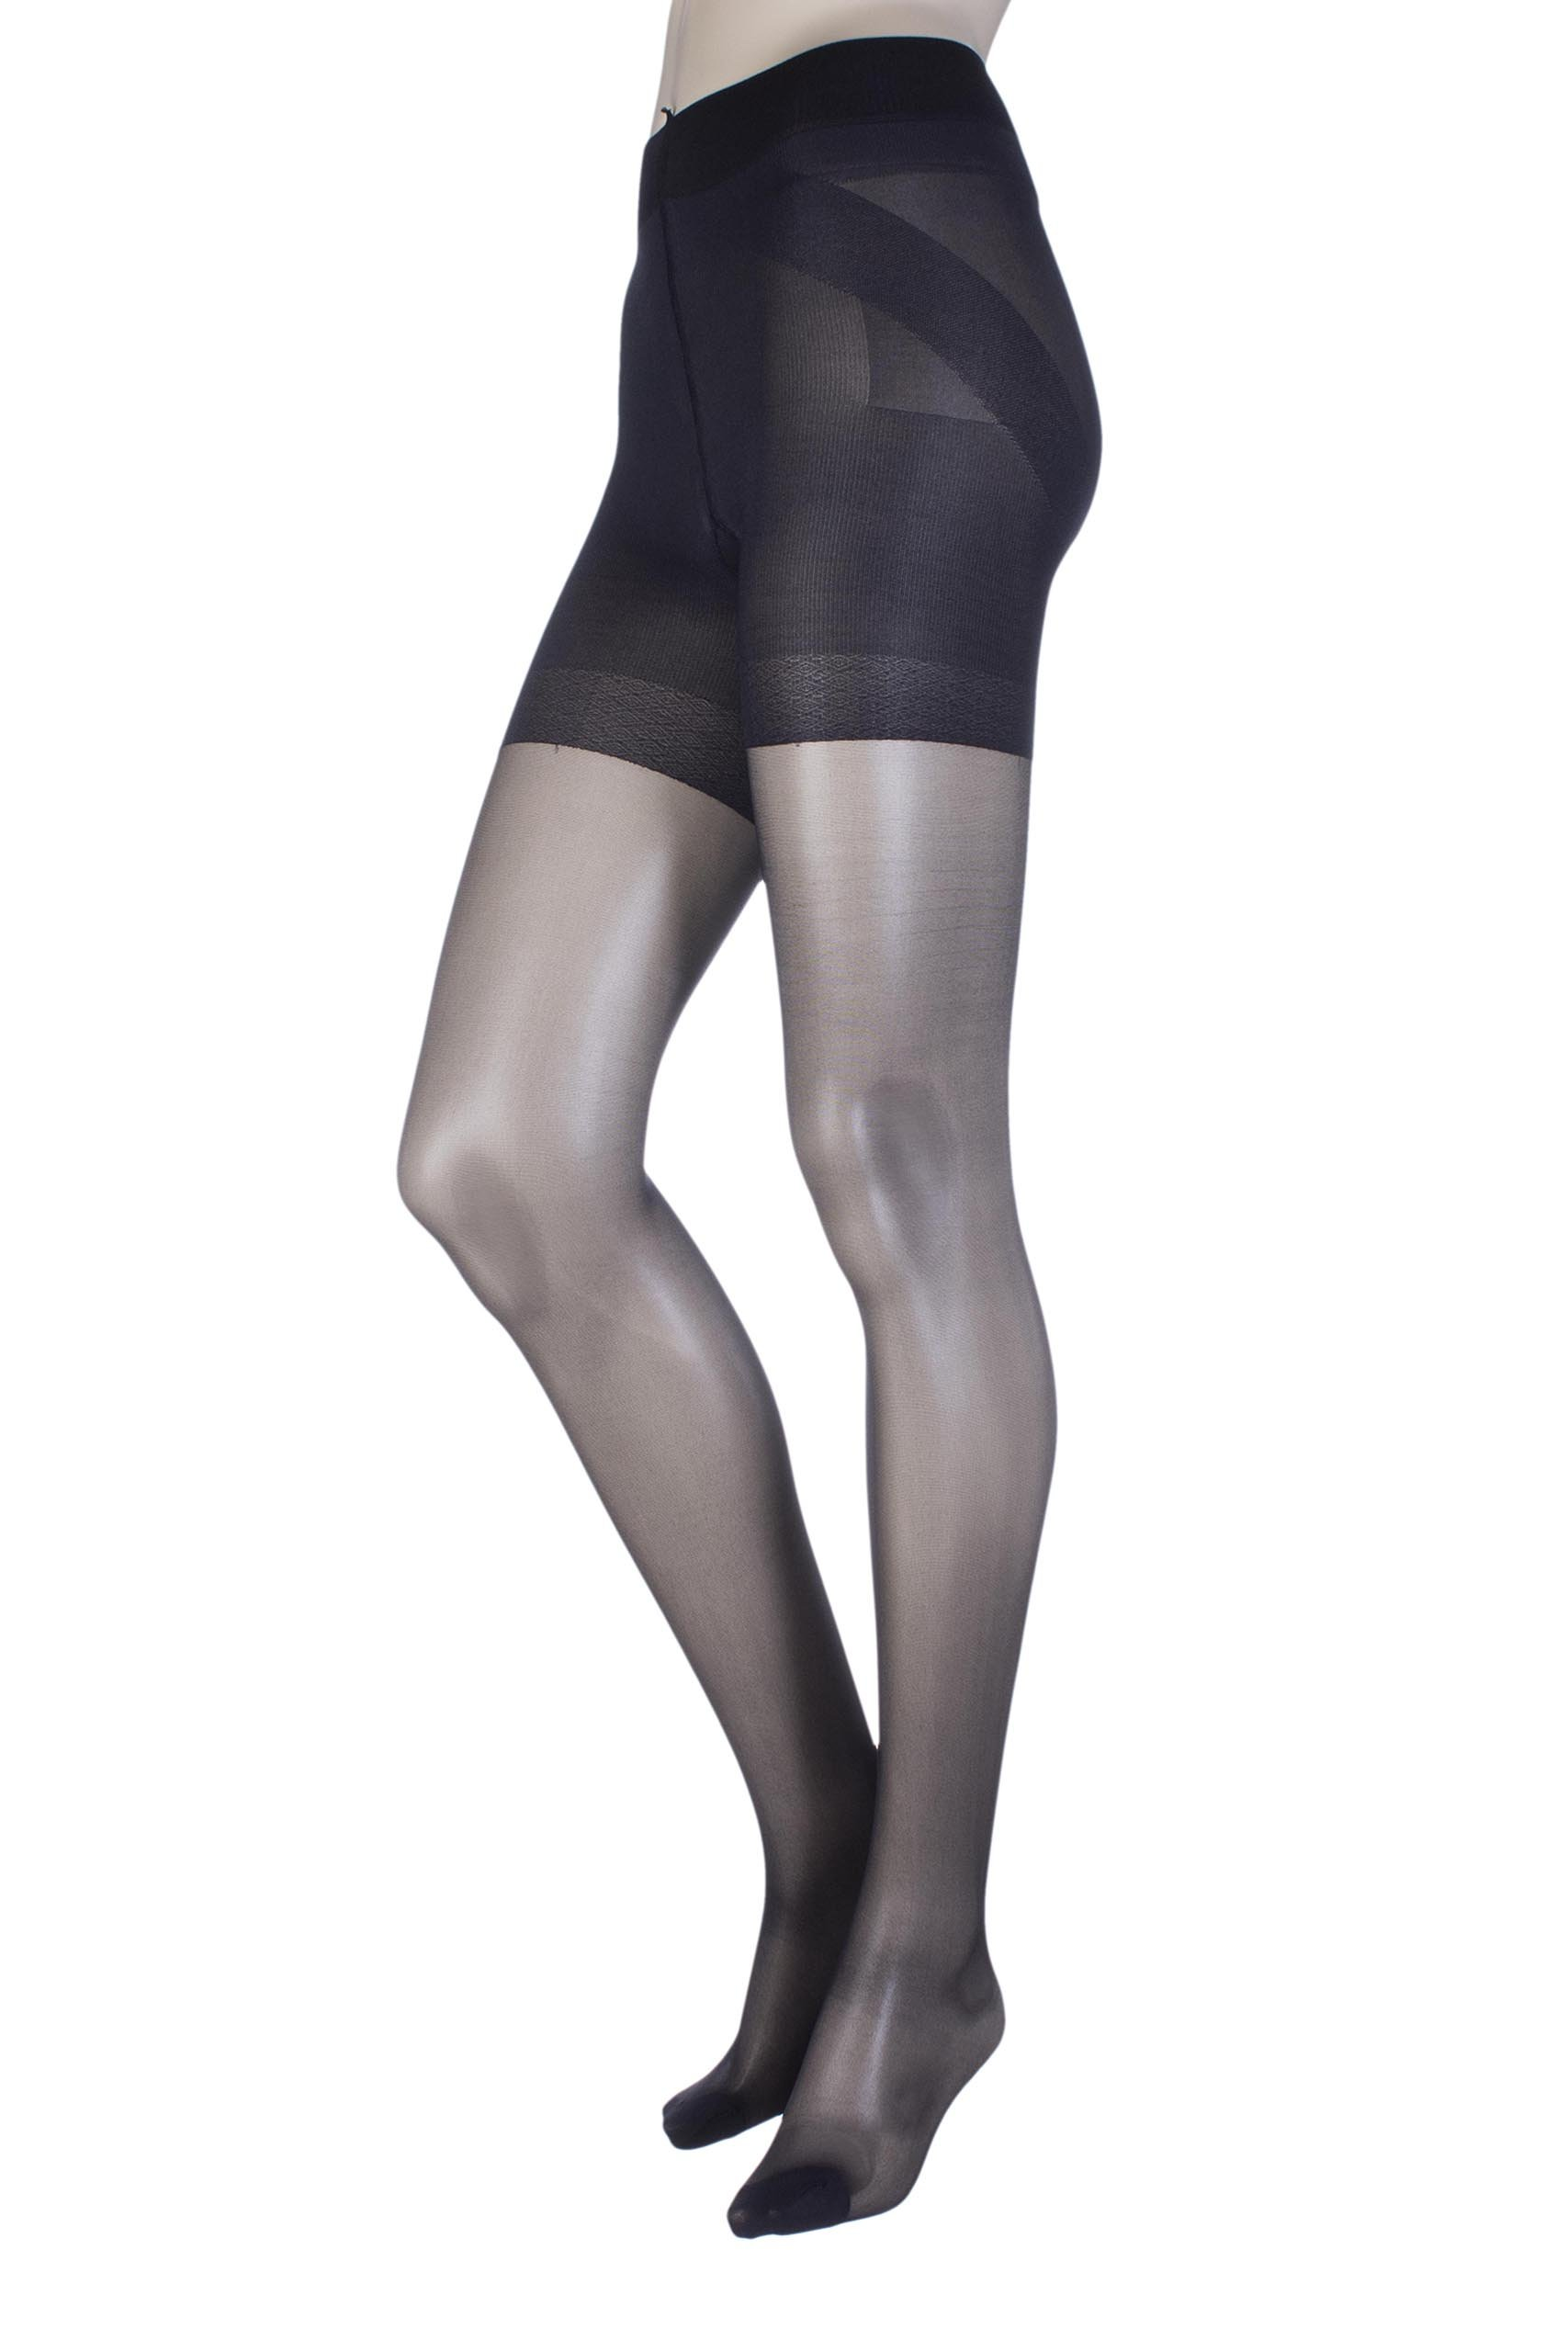 a629e052a8060 Oroblu Shock Up Body Sculpture Pantyhose Hosiery (Small Black ...